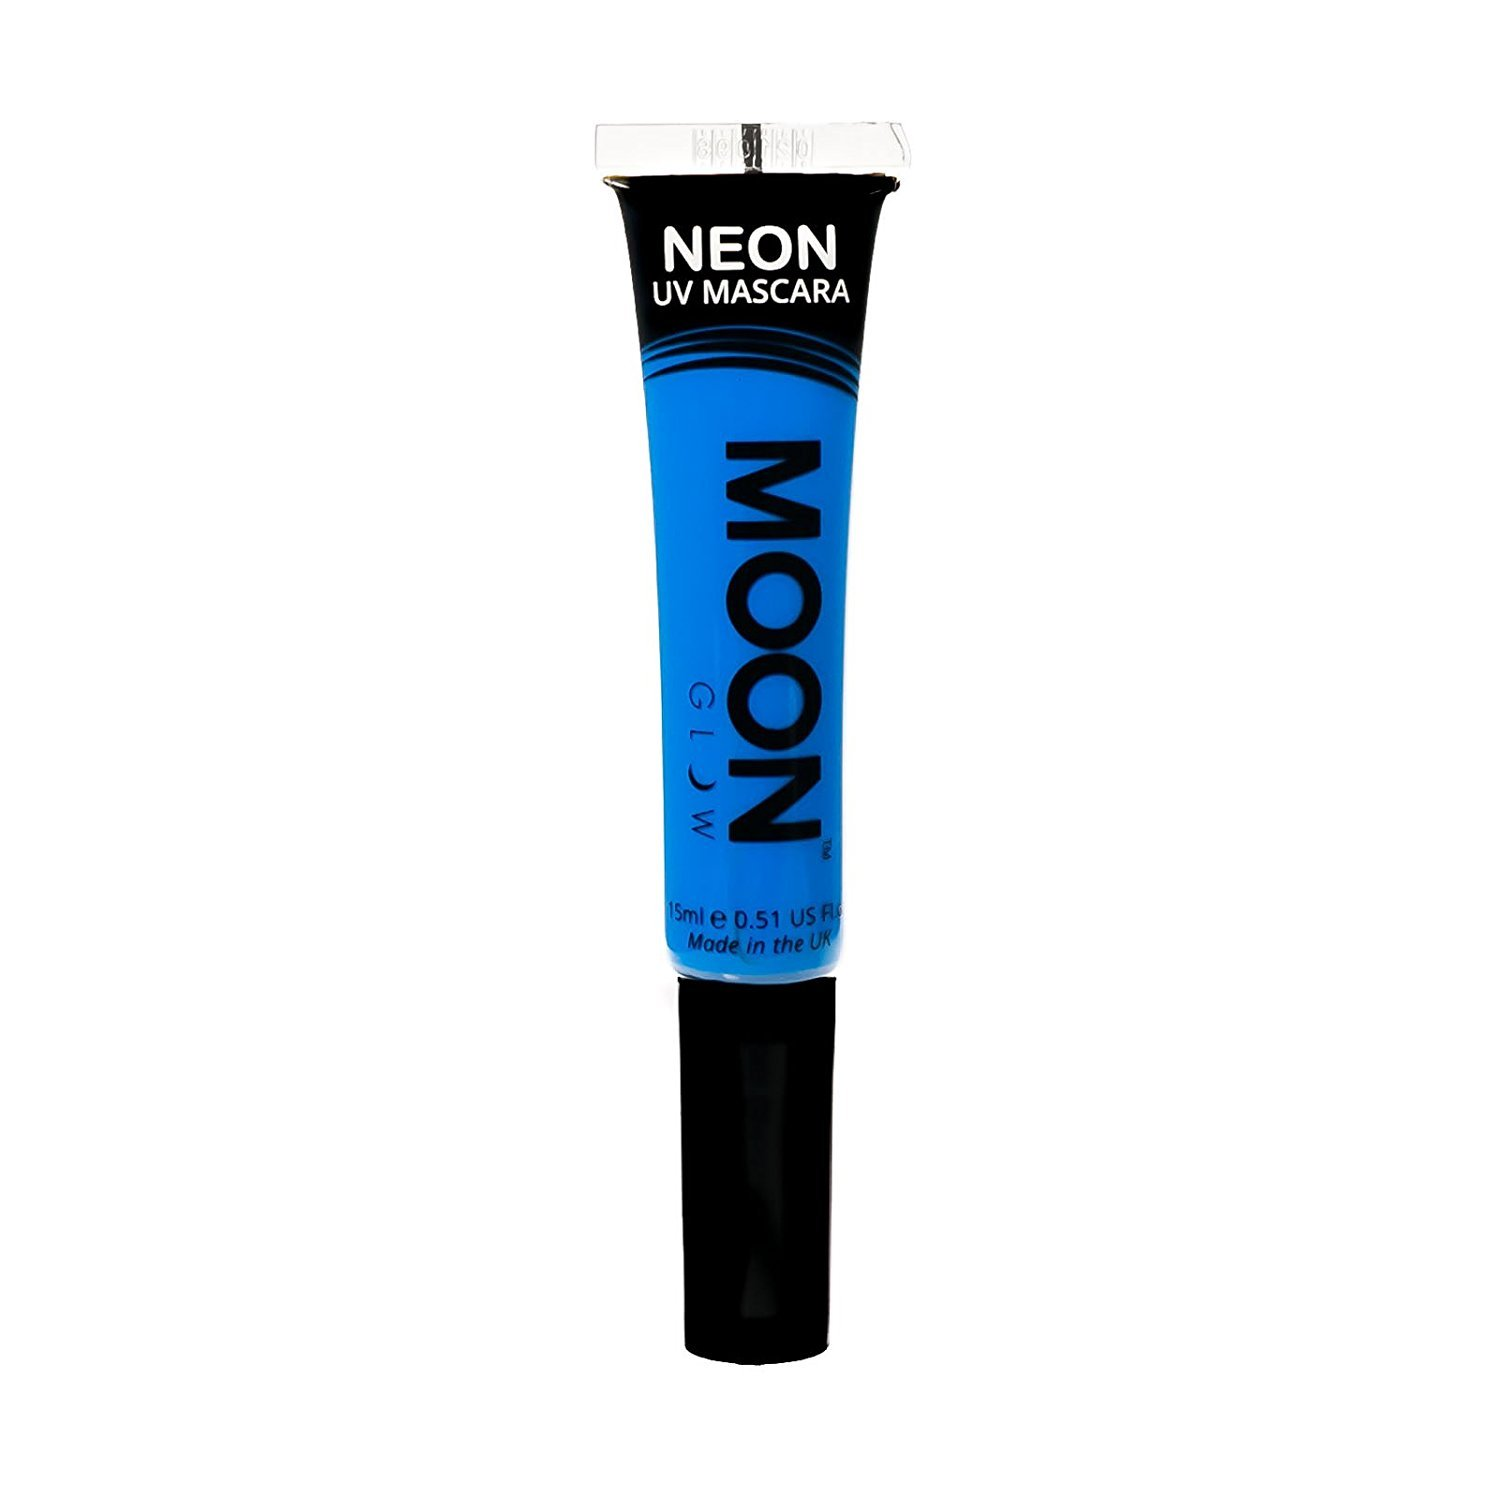 UV light mascara